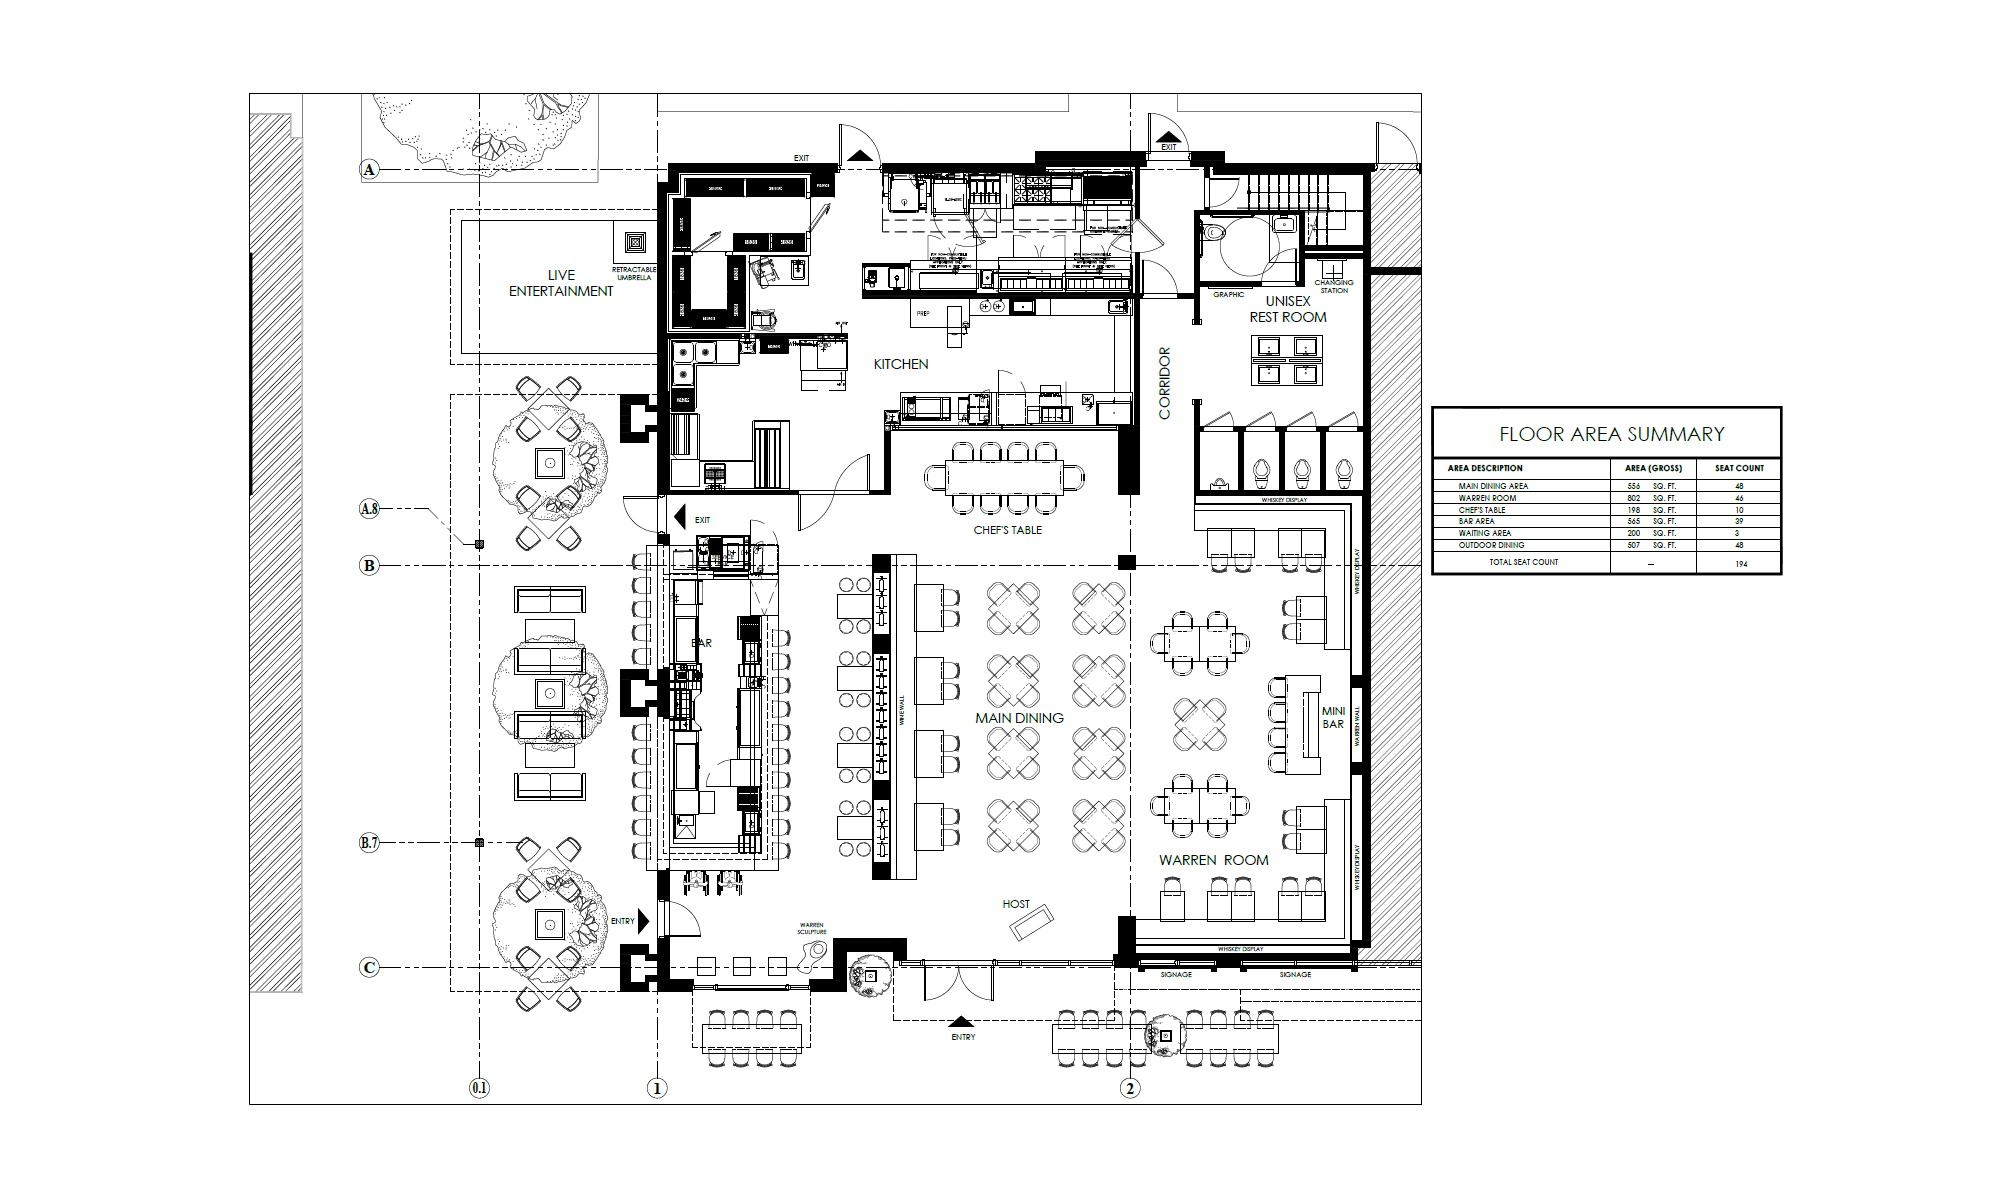 An image of the floor plan of Warren Delray.